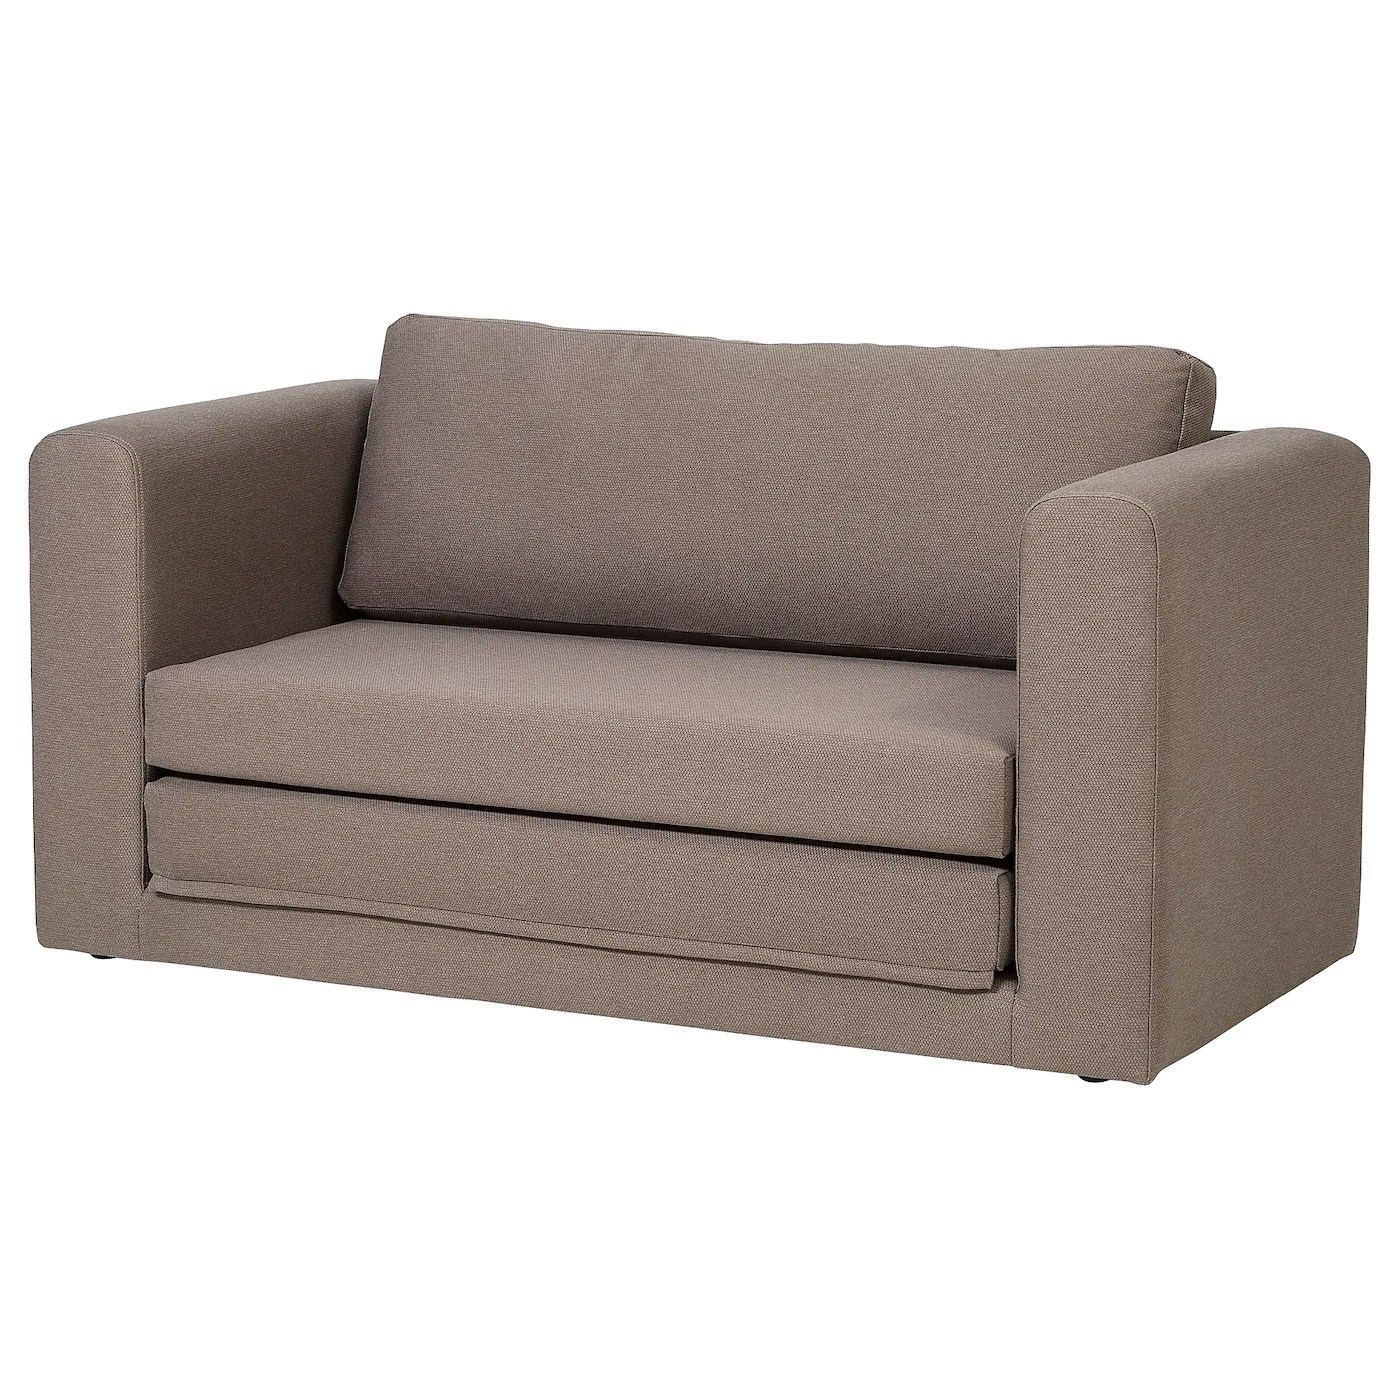 Ikea Sofa Askeby | Sofa Bed Dimensions Askeby Two Seat Sofa ...